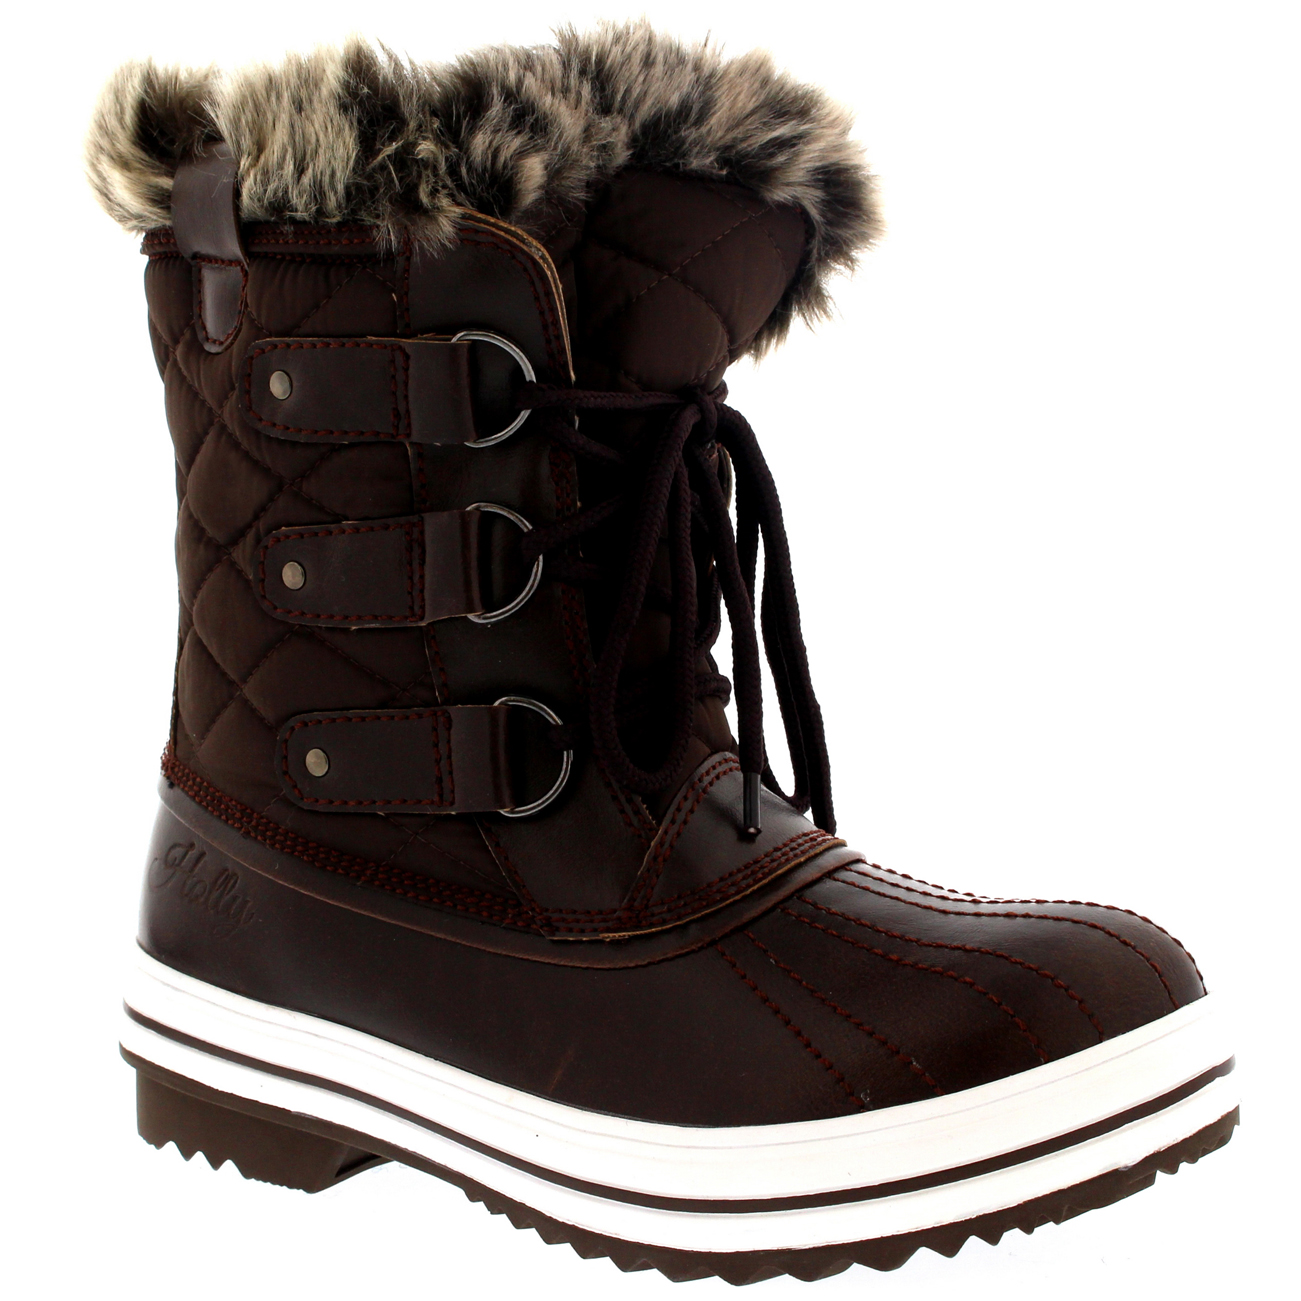 Women's winter snow boots size 9 – Modern fashion jacket photo blog